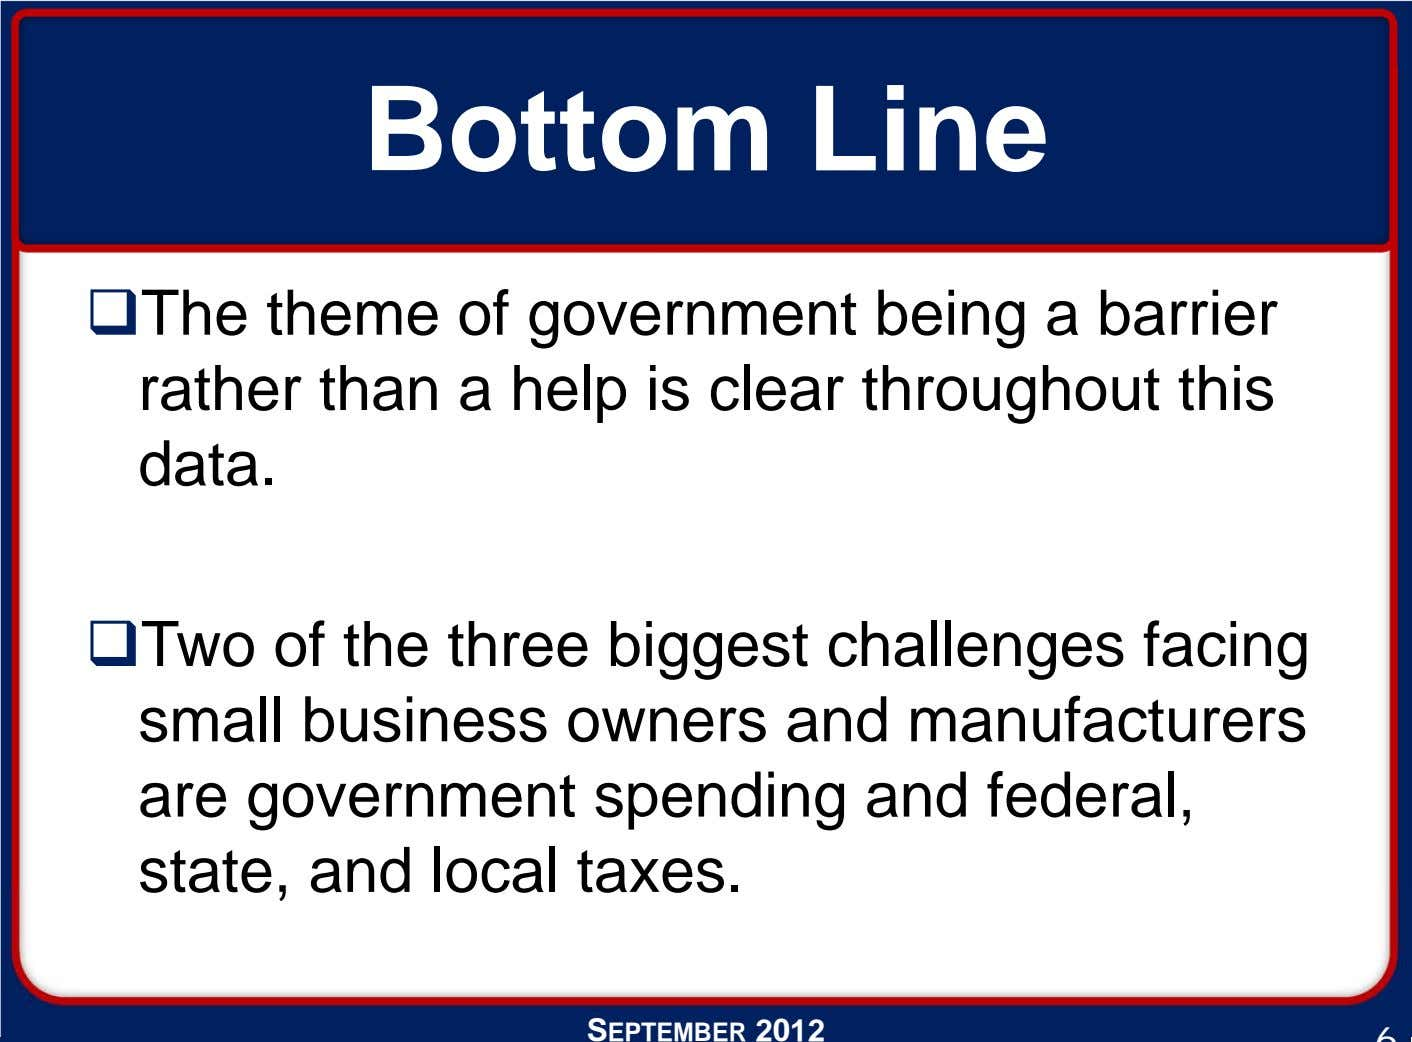 Bottom Line The theme of government being a barrier rather than a help is clear